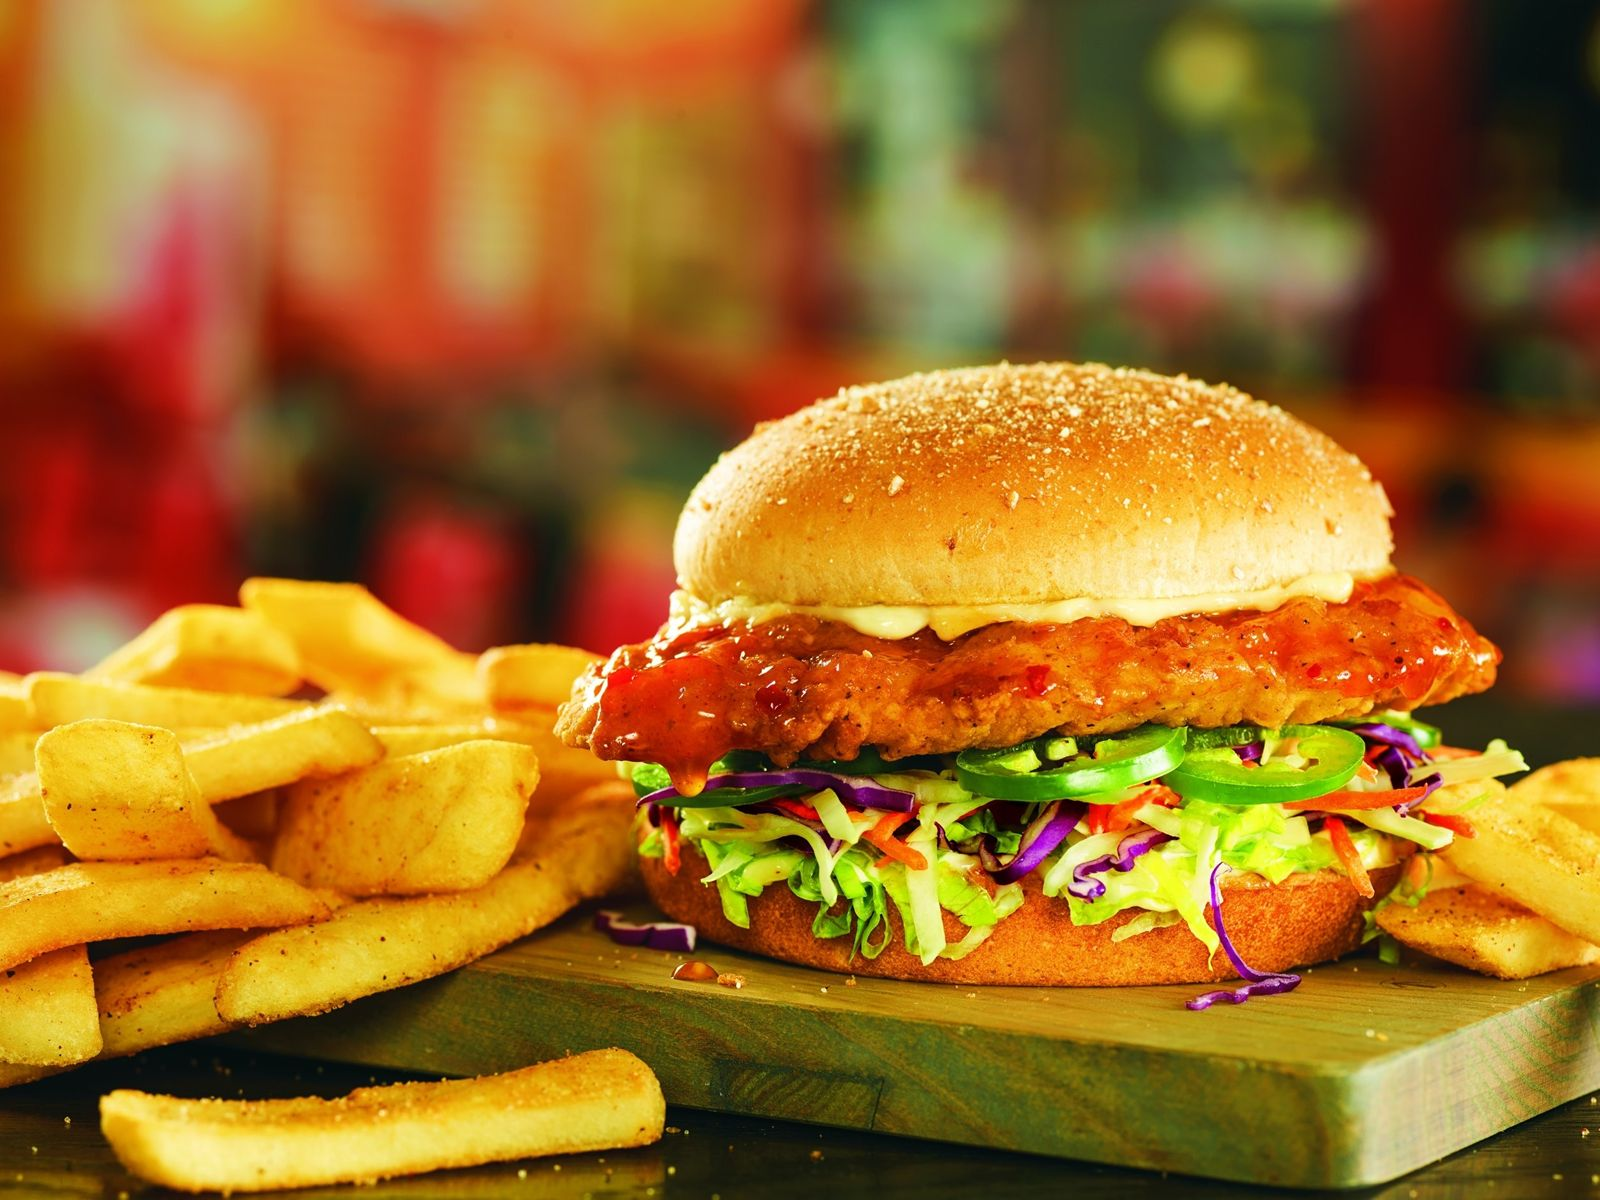 Red Robin Gourmet Burgers and Brews Introduces Un-Beer-Lievably Delicious Bottomless Hop-Salt Fries and New Island Heat Crispy Chicken